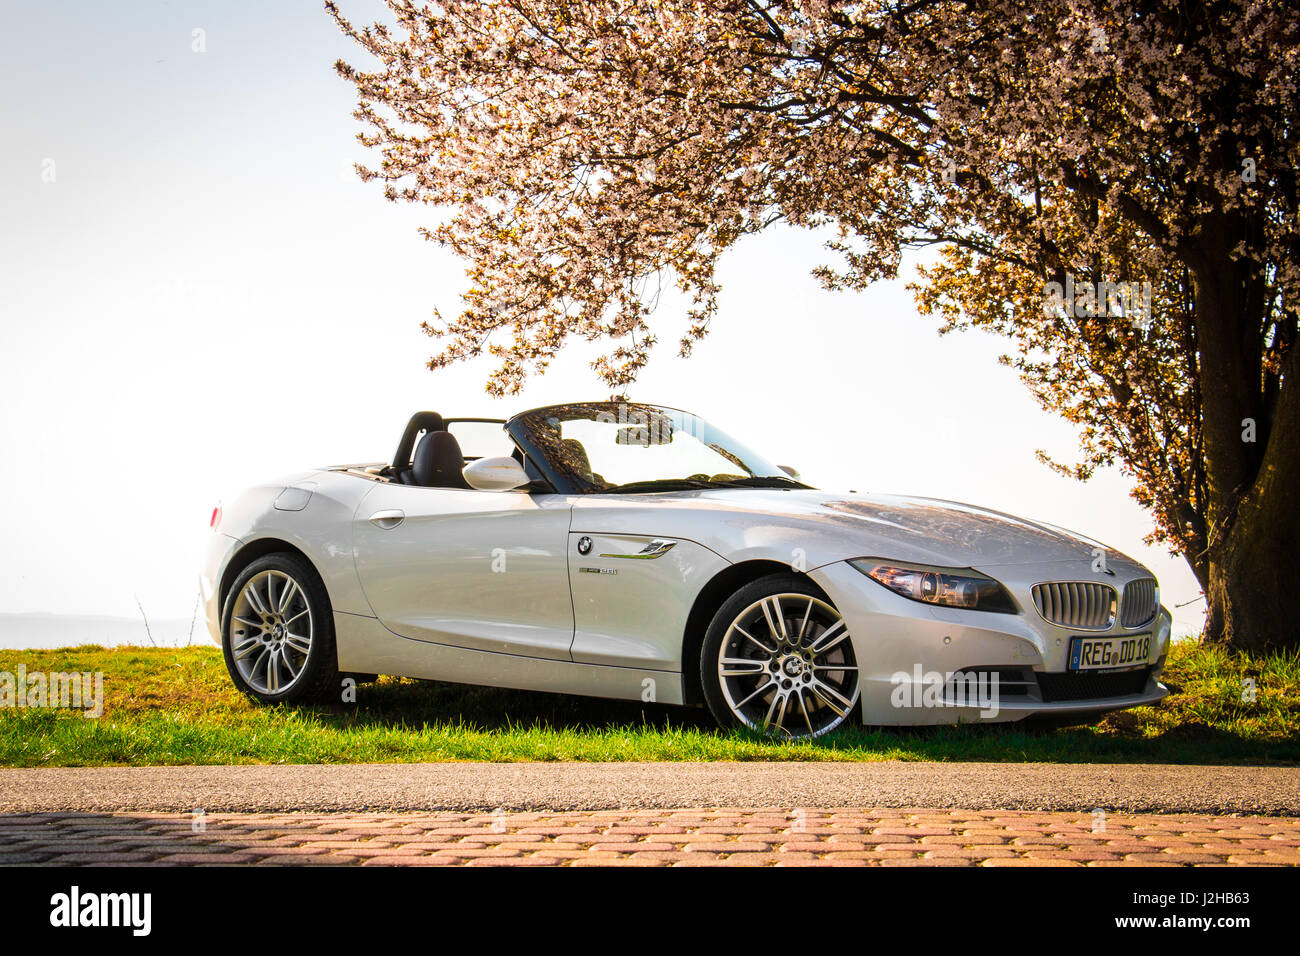 bmw z4 stock photos bmw z4 stock images alamy. Black Bedroom Furniture Sets. Home Design Ideas